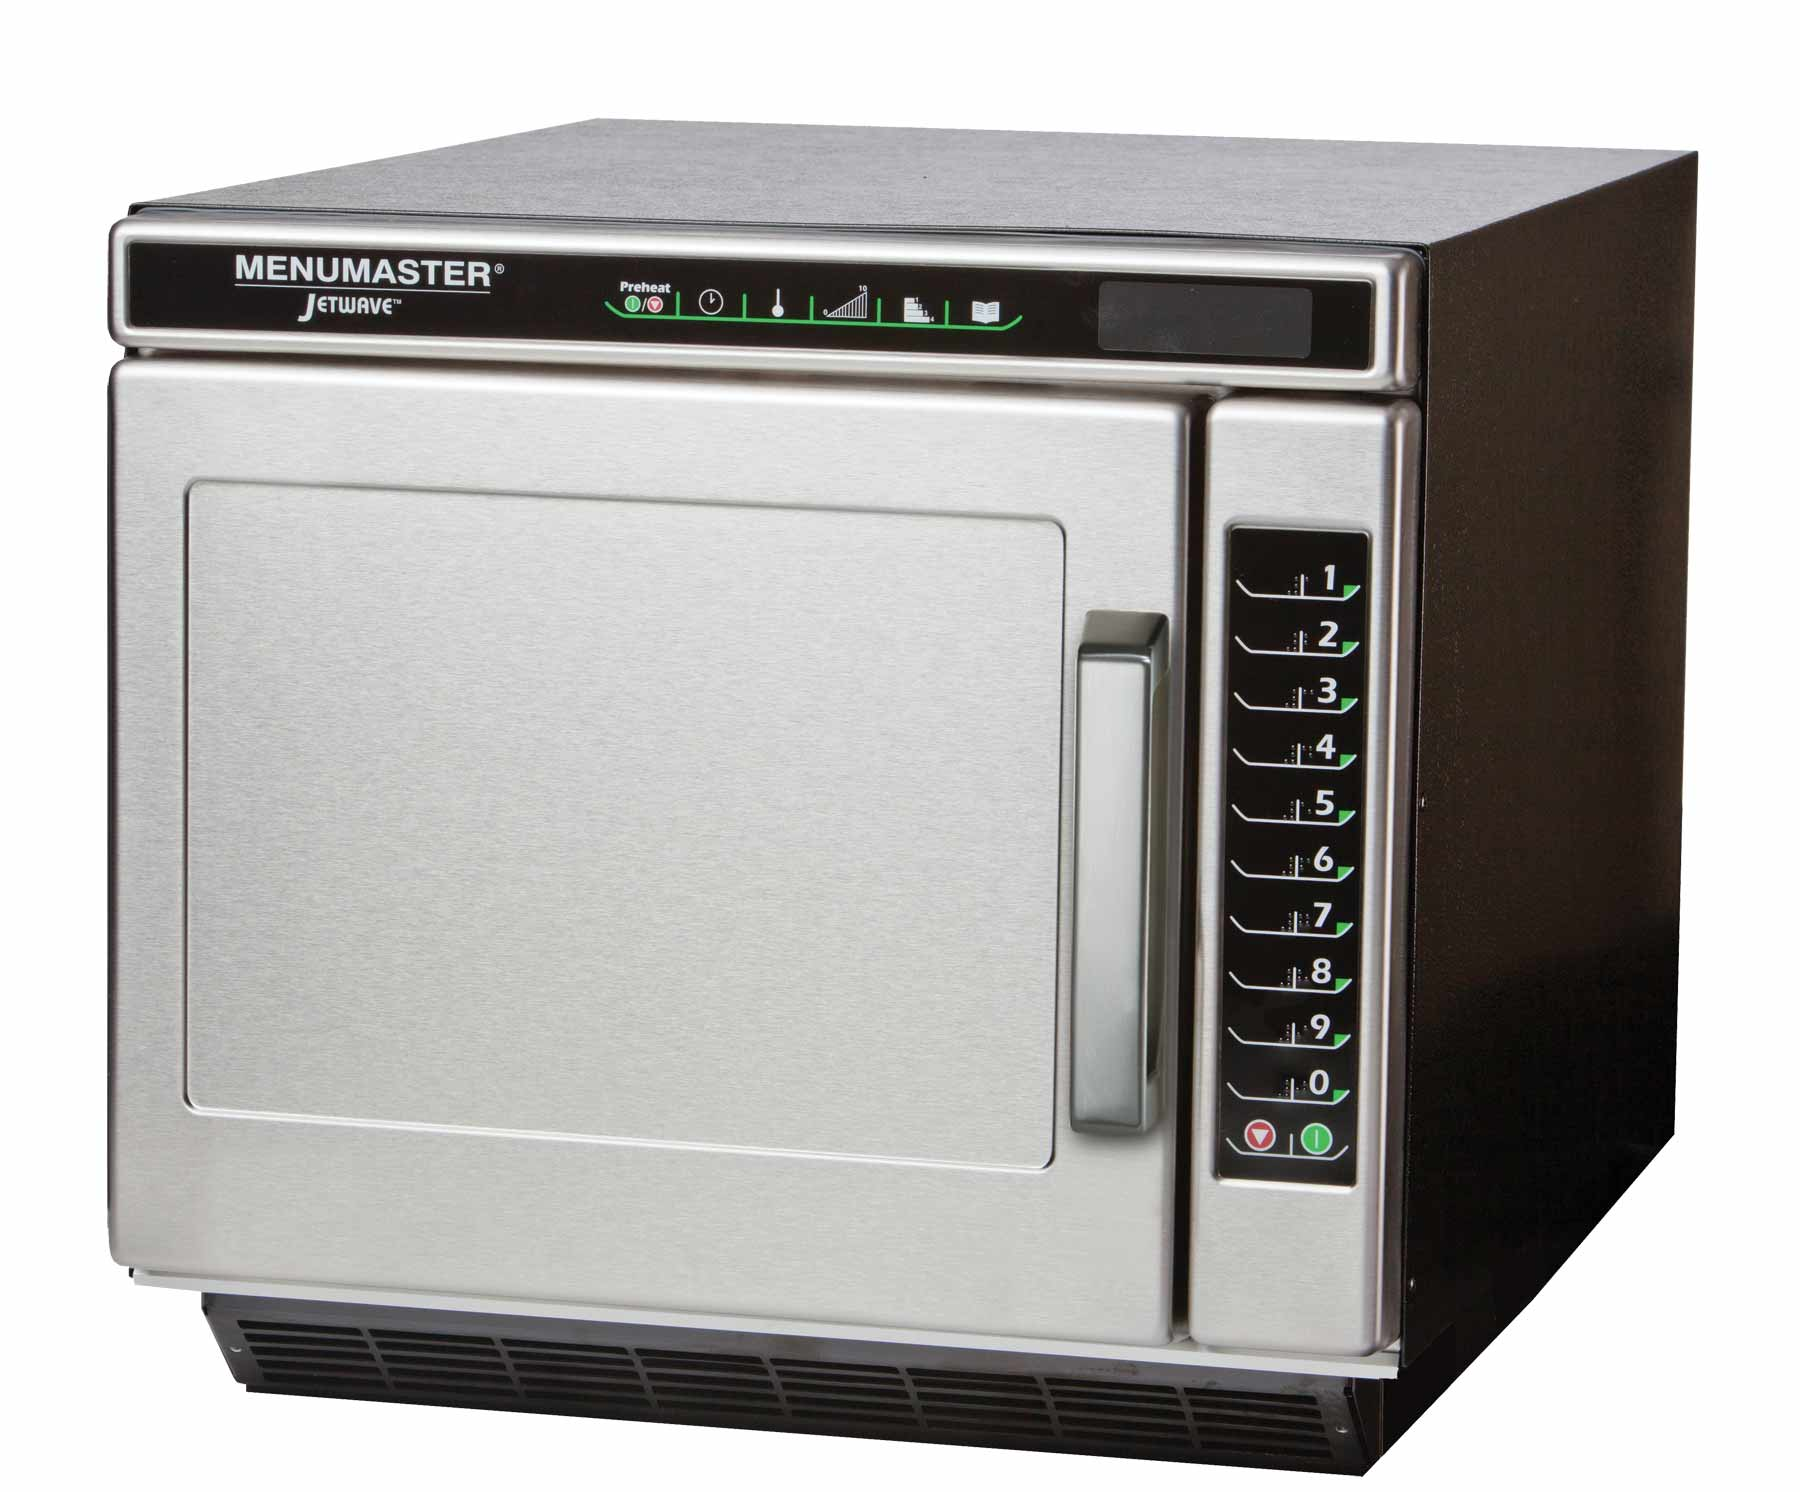 commercial microwave oven amana jetwave convection microwave oven 2700 watts convection 1400 jet14 watts microwave